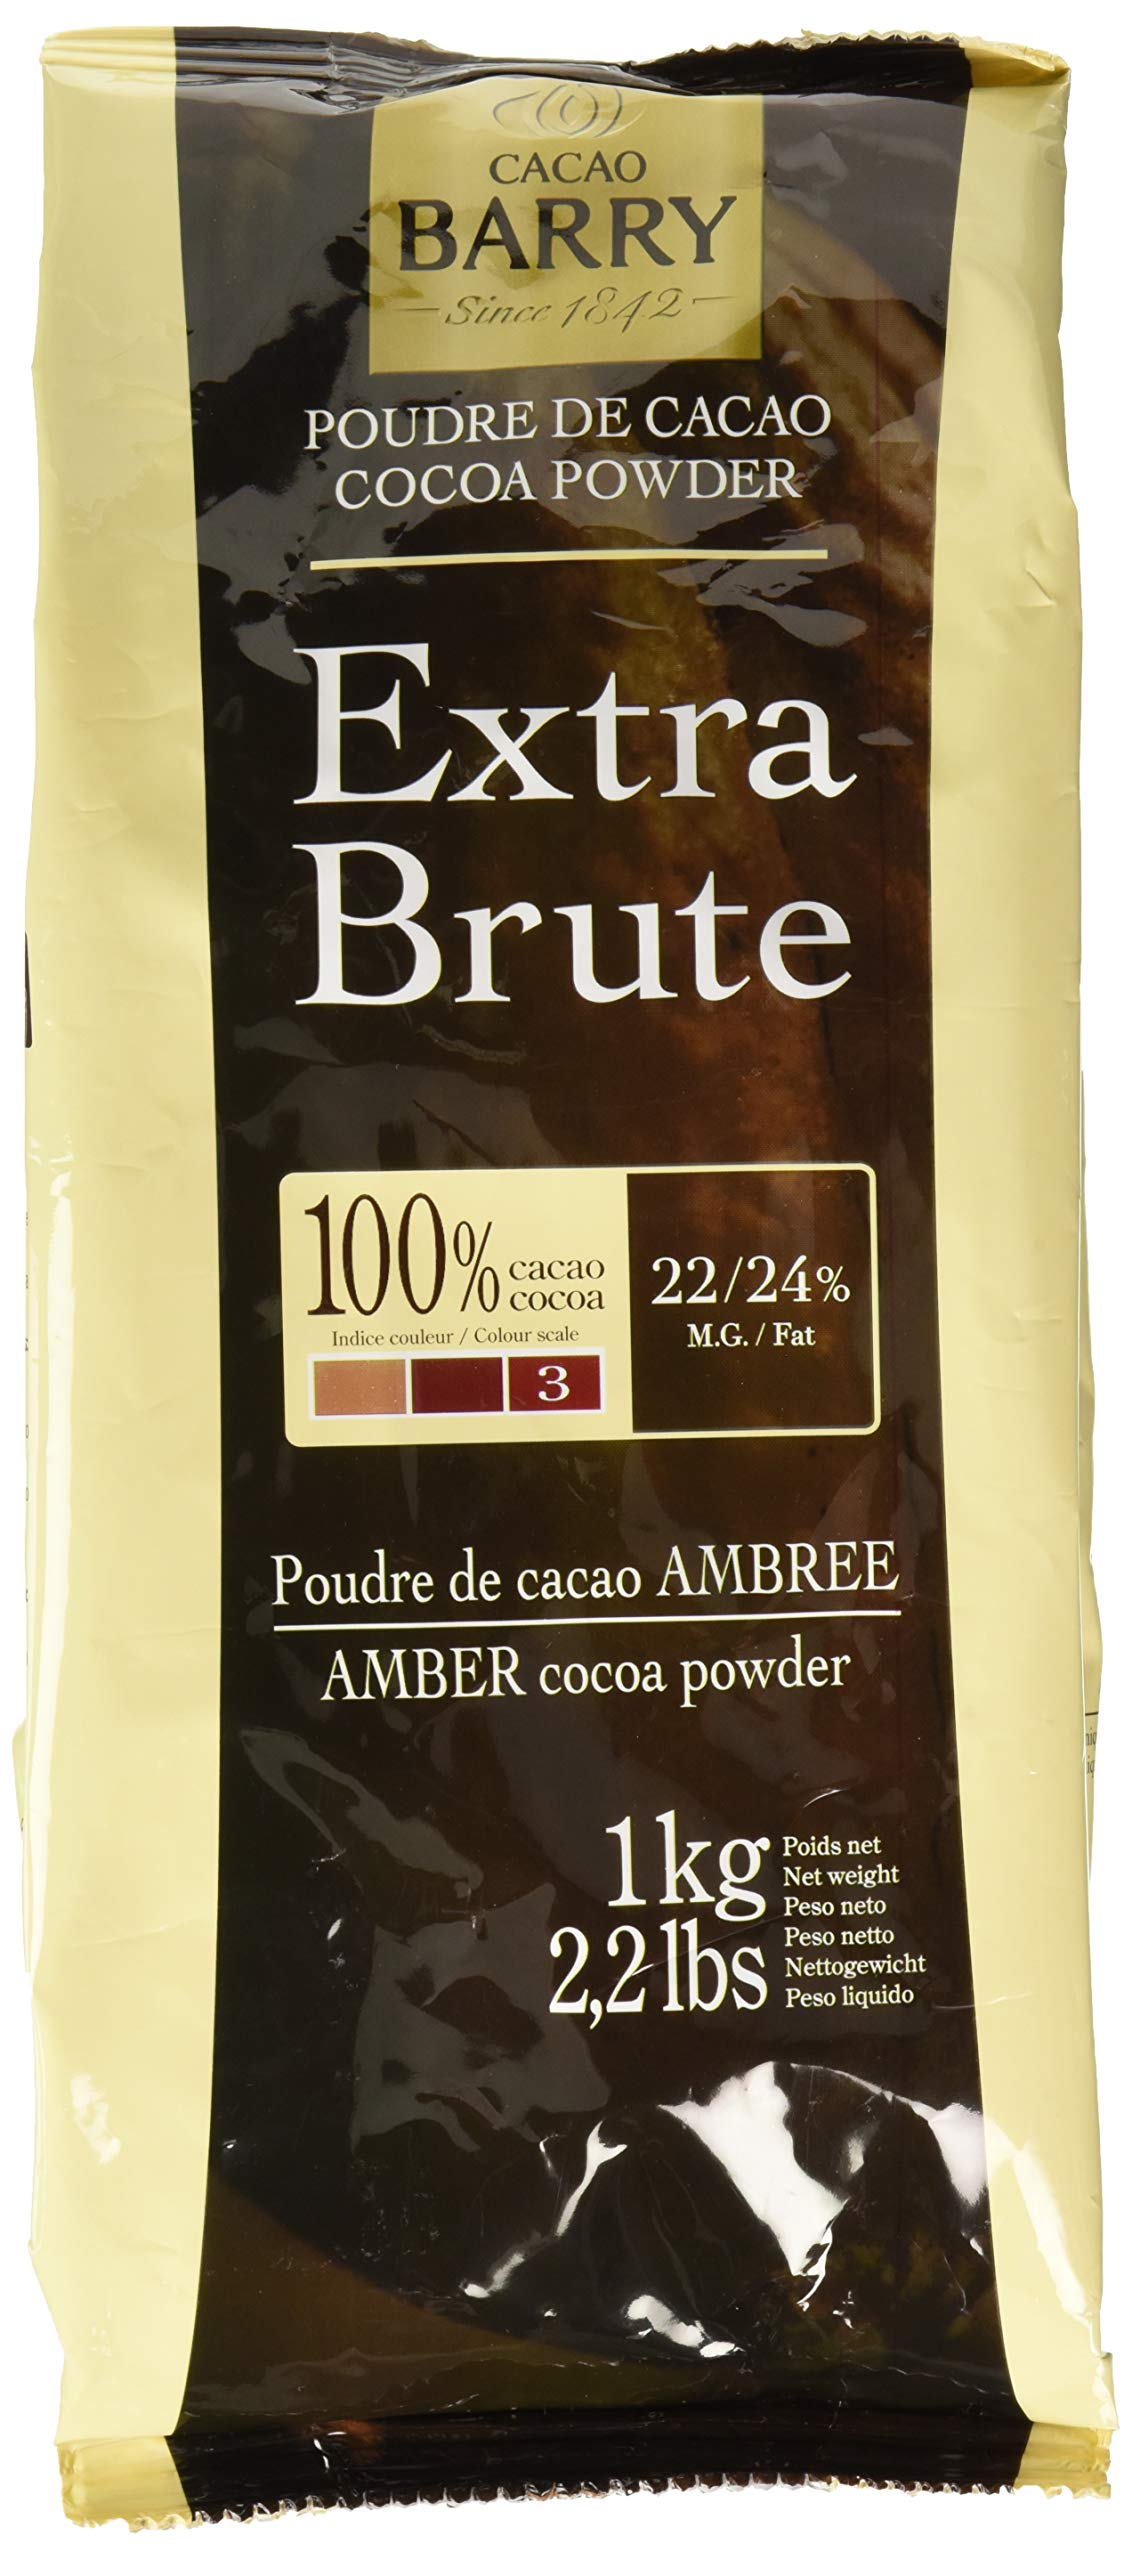 Cacao Barry Cocoa Powder 100% Cocoa Extra Brute, 2.2 lb (Pack of 2) by Cacao Barry (Image #1)